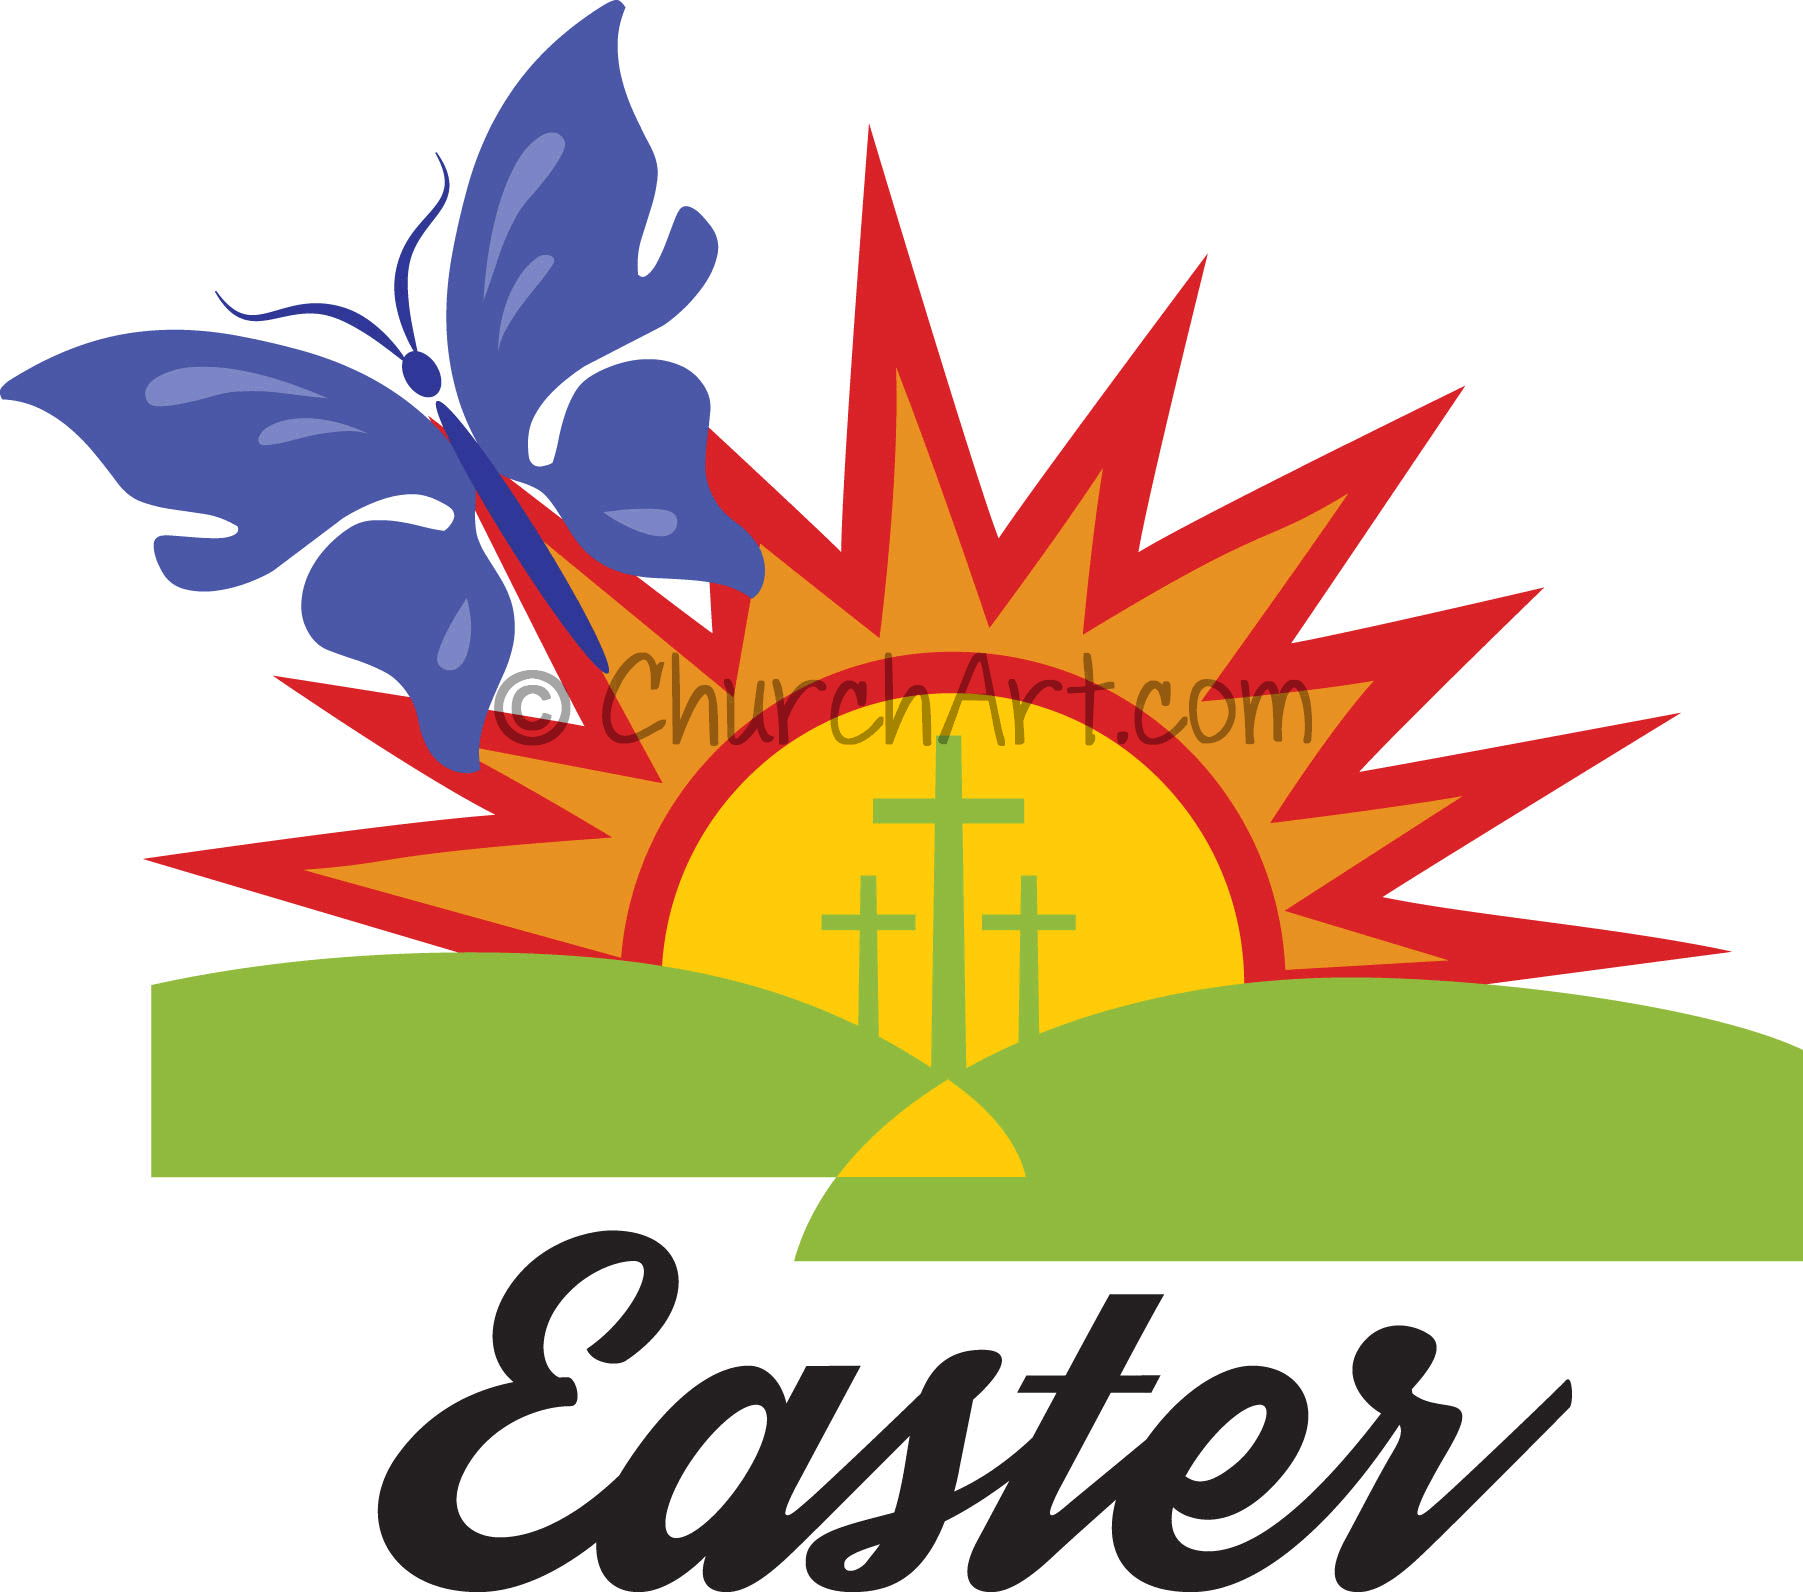 Easter clipart with sunrise, three crosses and butterfly for Easter service, Easter church bulletin or Easter church newsletter